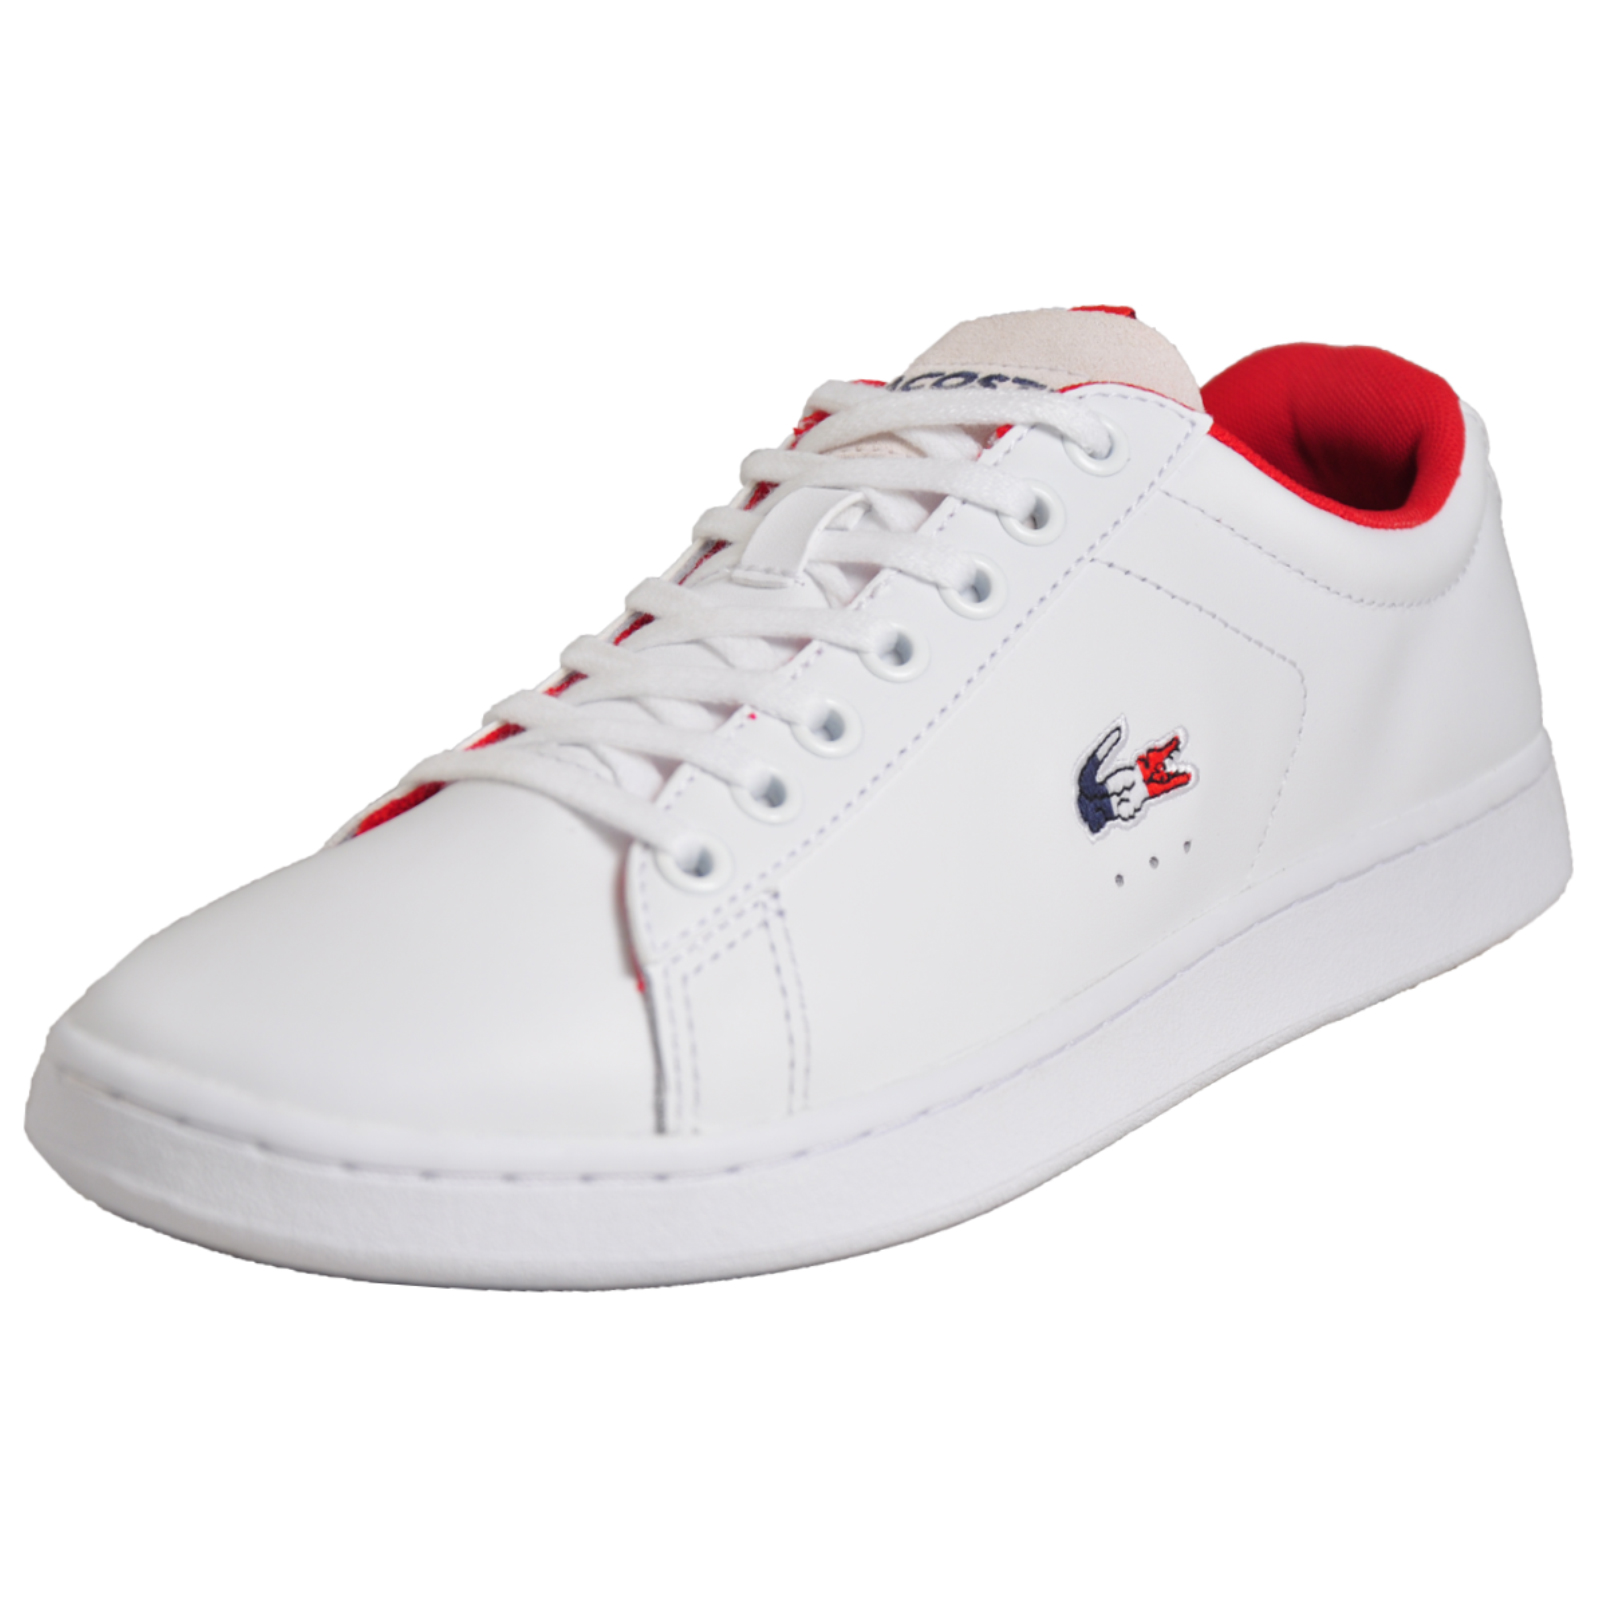 9d98990a0 Details about Lacoste Carnaby Evo Men s Classic Casual Designer Trainers  White B Grade